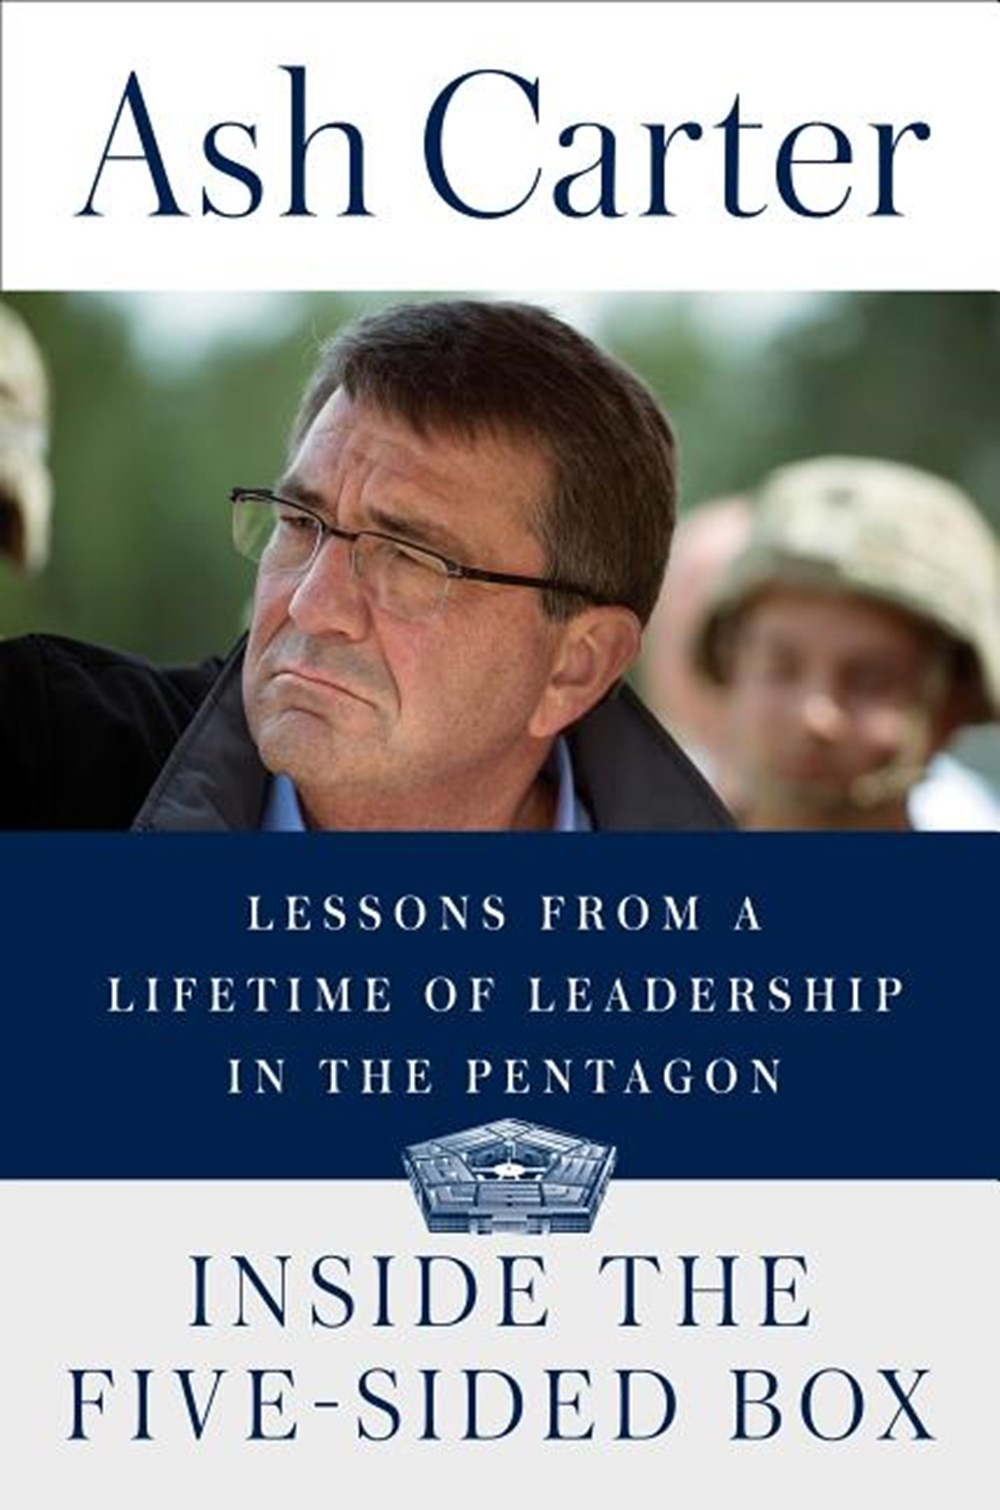 Inside the Five-Sided Box Lessons from a Lifetime of Leadership in the Pentagon